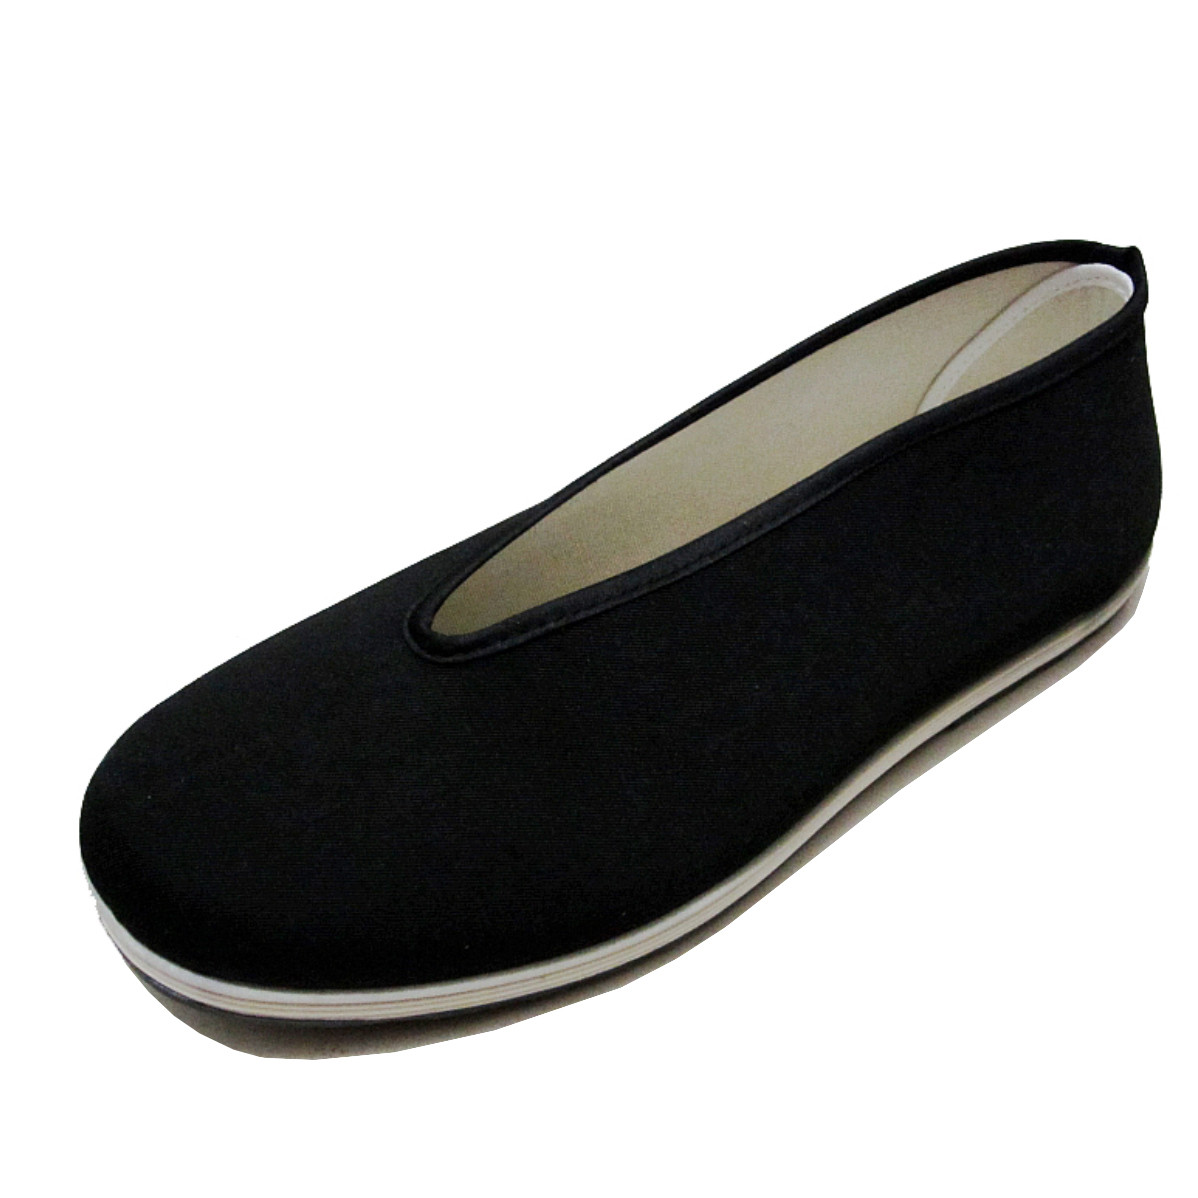 Kung Fu Shoes Nostalgia Style Rubber Soles